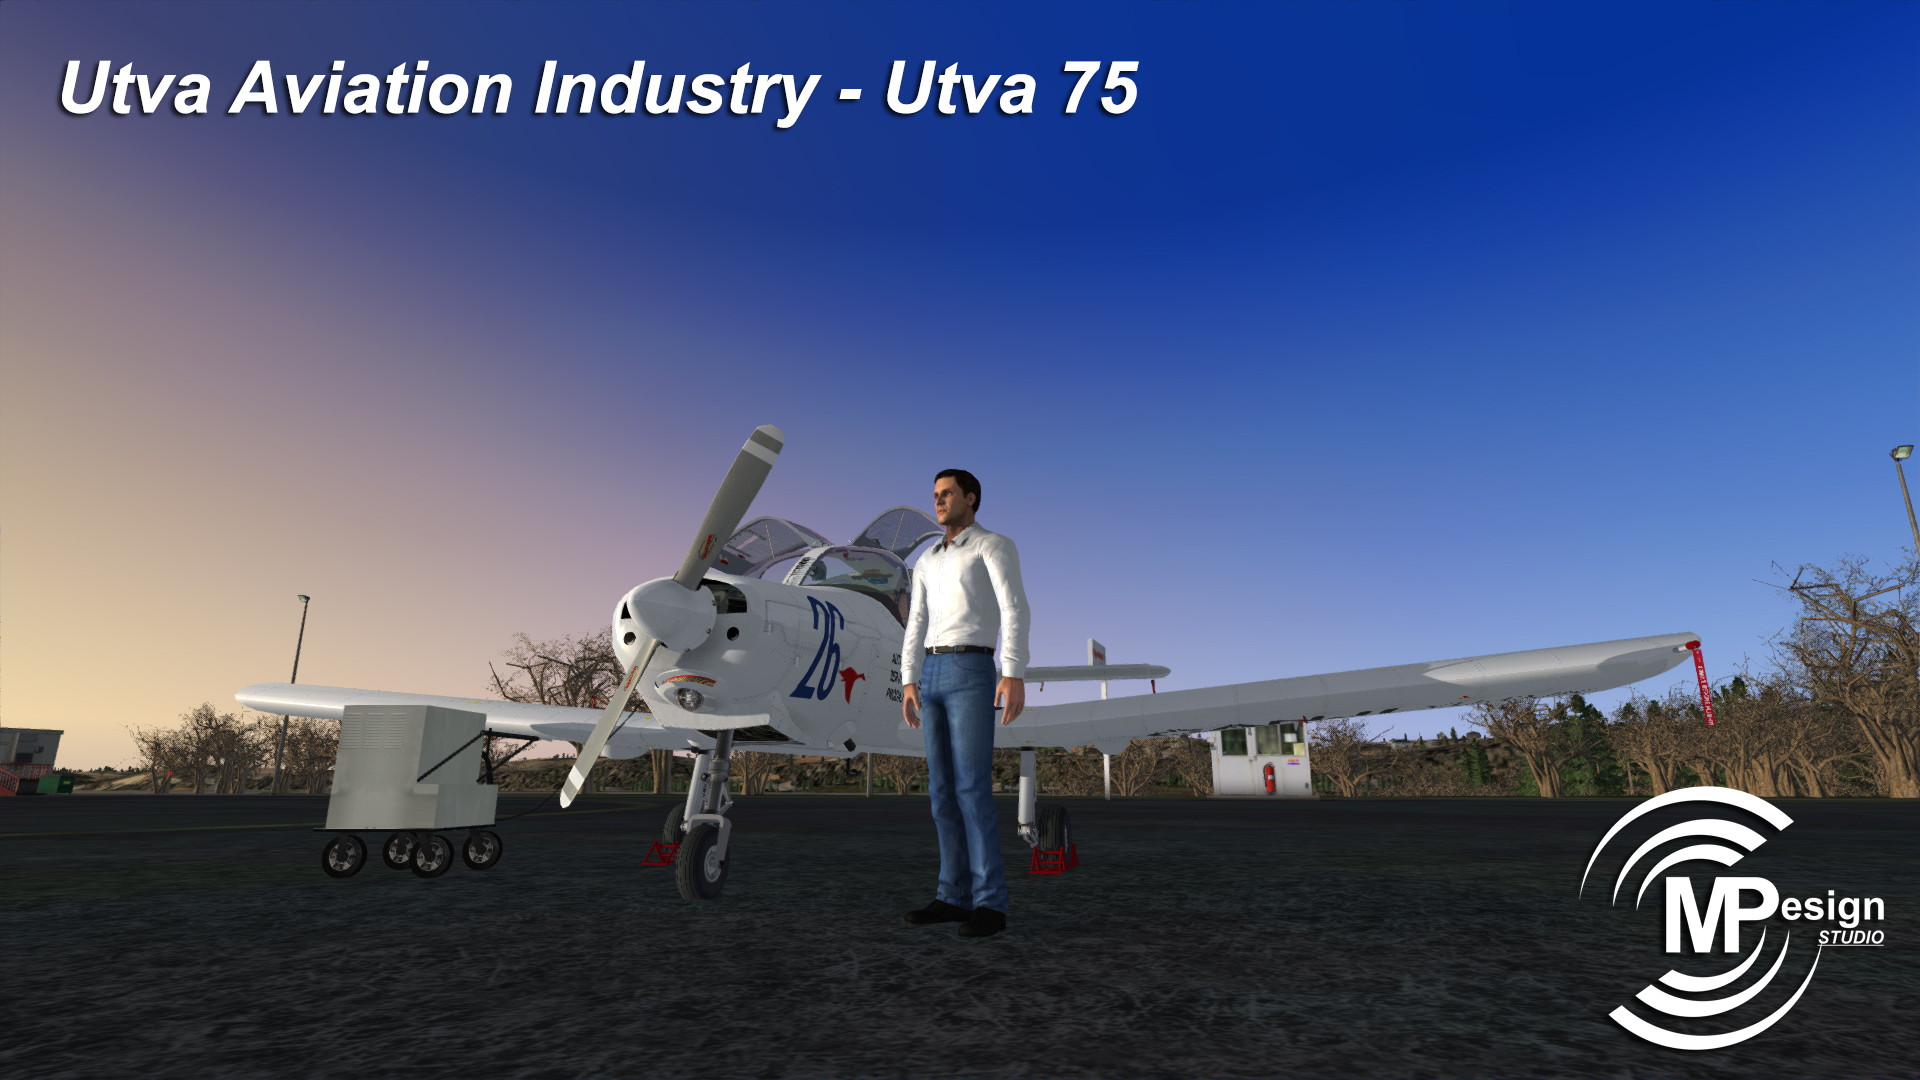 MP DESIGN STUDIO - UTVA AVIATION INDUSTRY - UTVA 75 FSX P3D